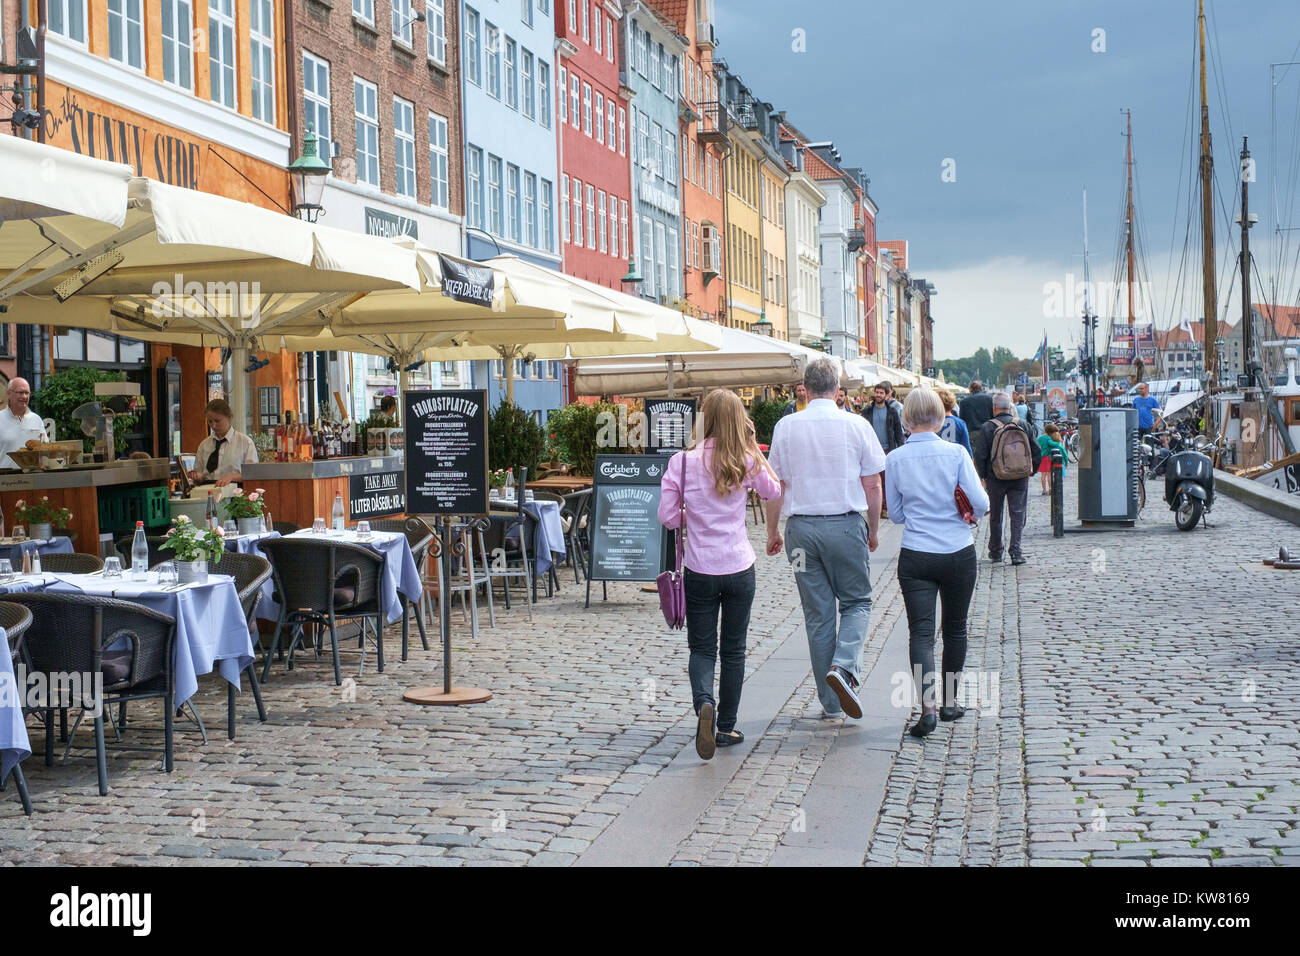 Waterfront restaurants at Nyhavn, a 17th century harbor district in the center of Copenhagen and currently a popular - Stock Image